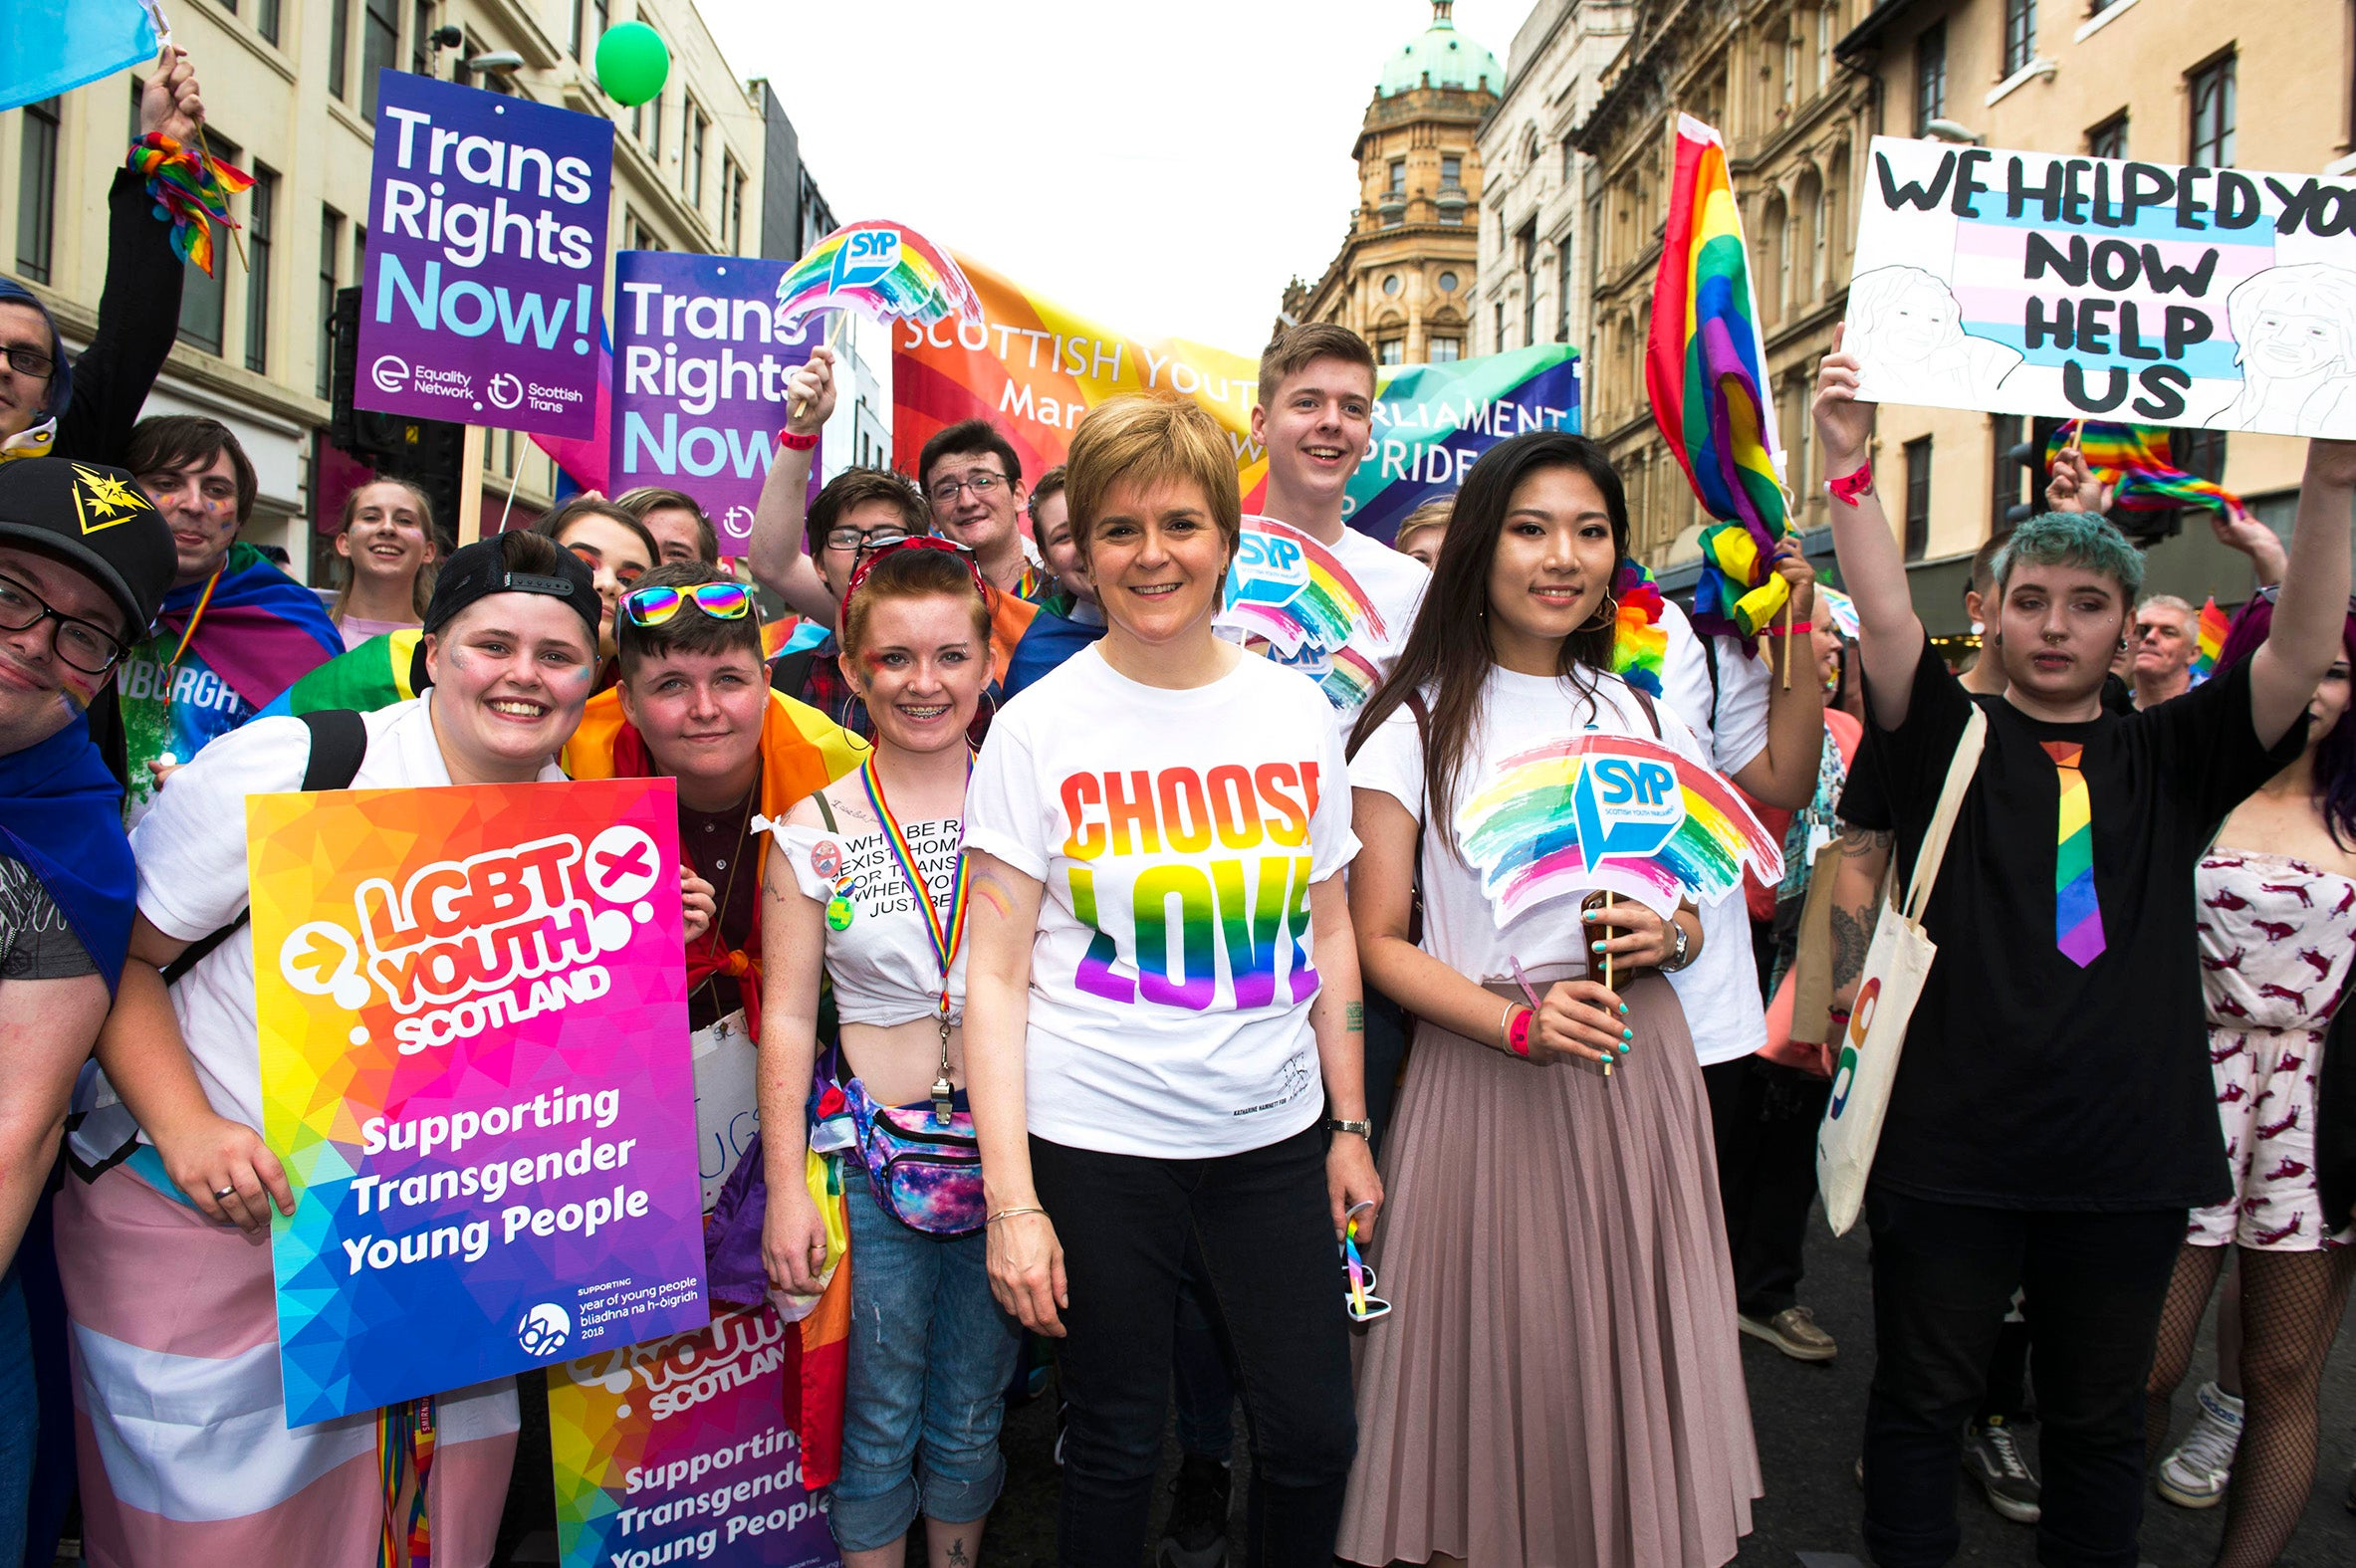 Nicola Sturgeon is refusing to back down on trans rights  – but resistance is growing